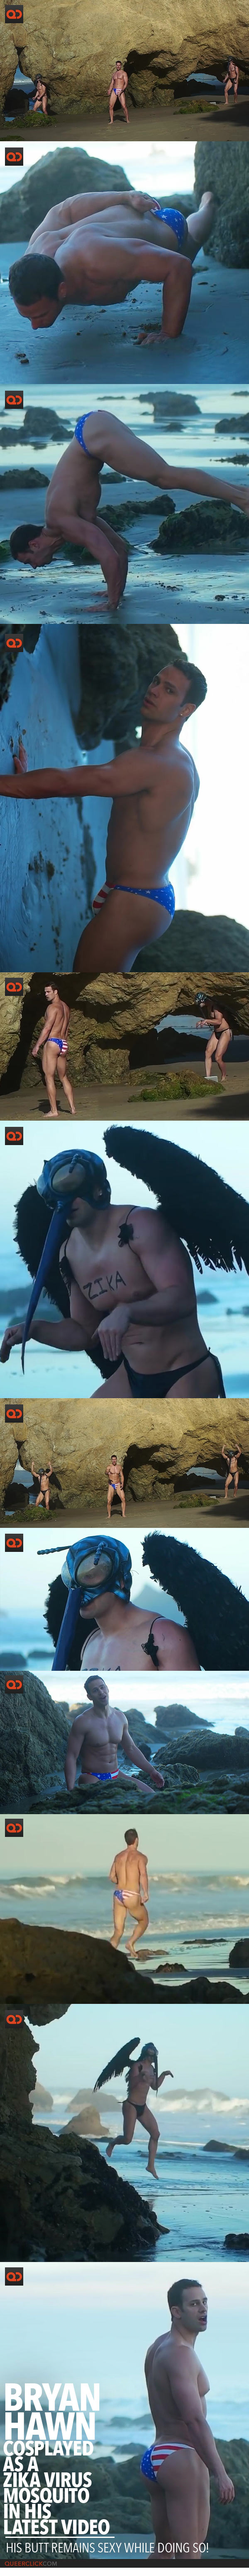 Bryan Hawn Cosplayed As A Zika Virus Mosquito In His Latest Video, His Butt Remains Sexy While Doing So!